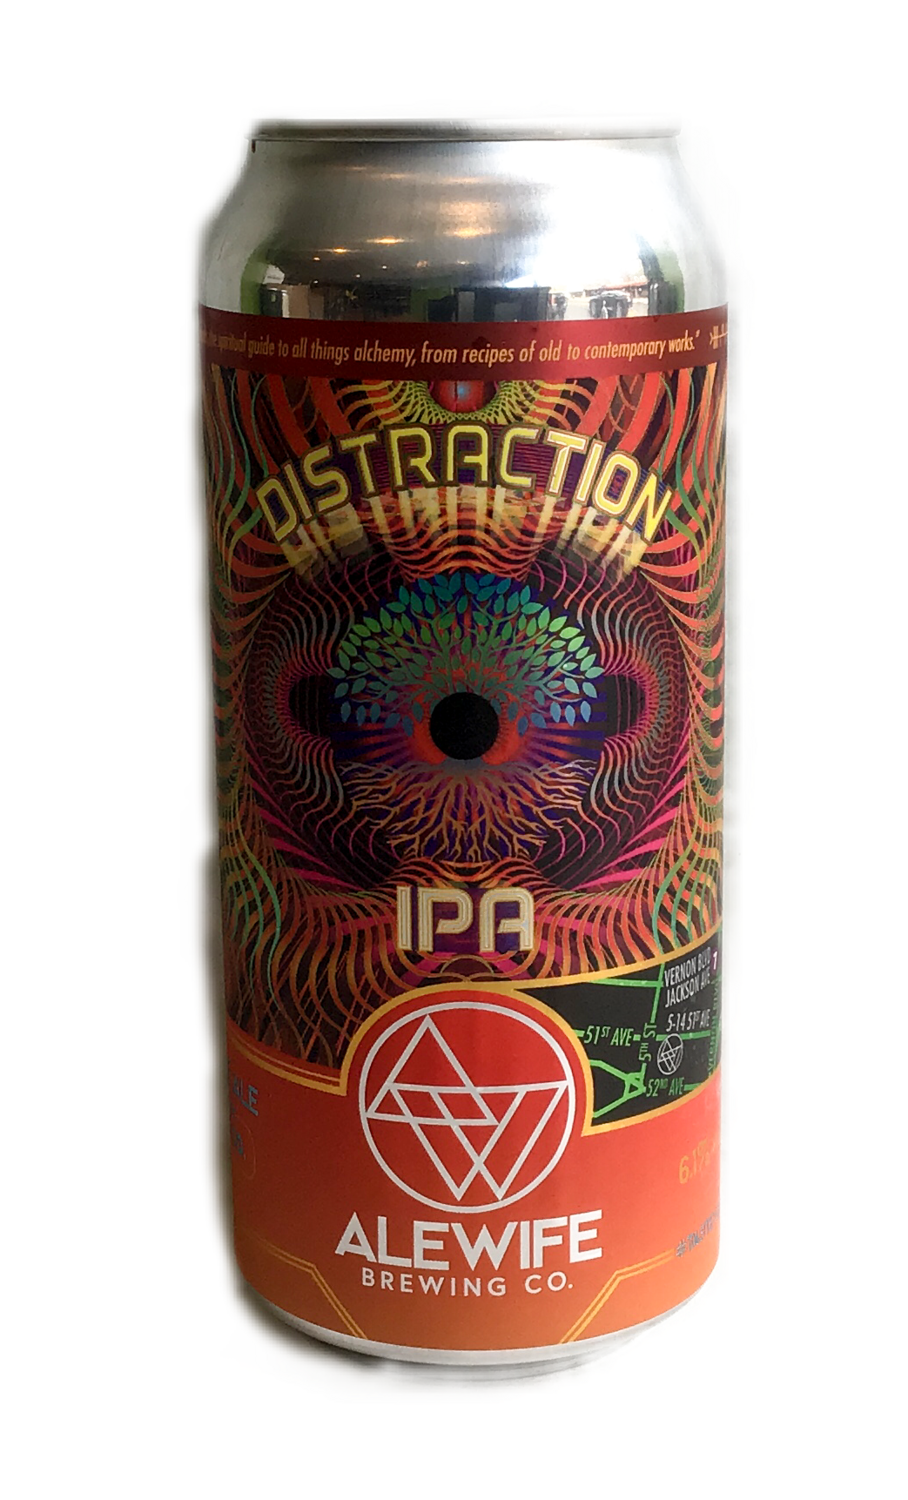 Alewife Distraction IPA